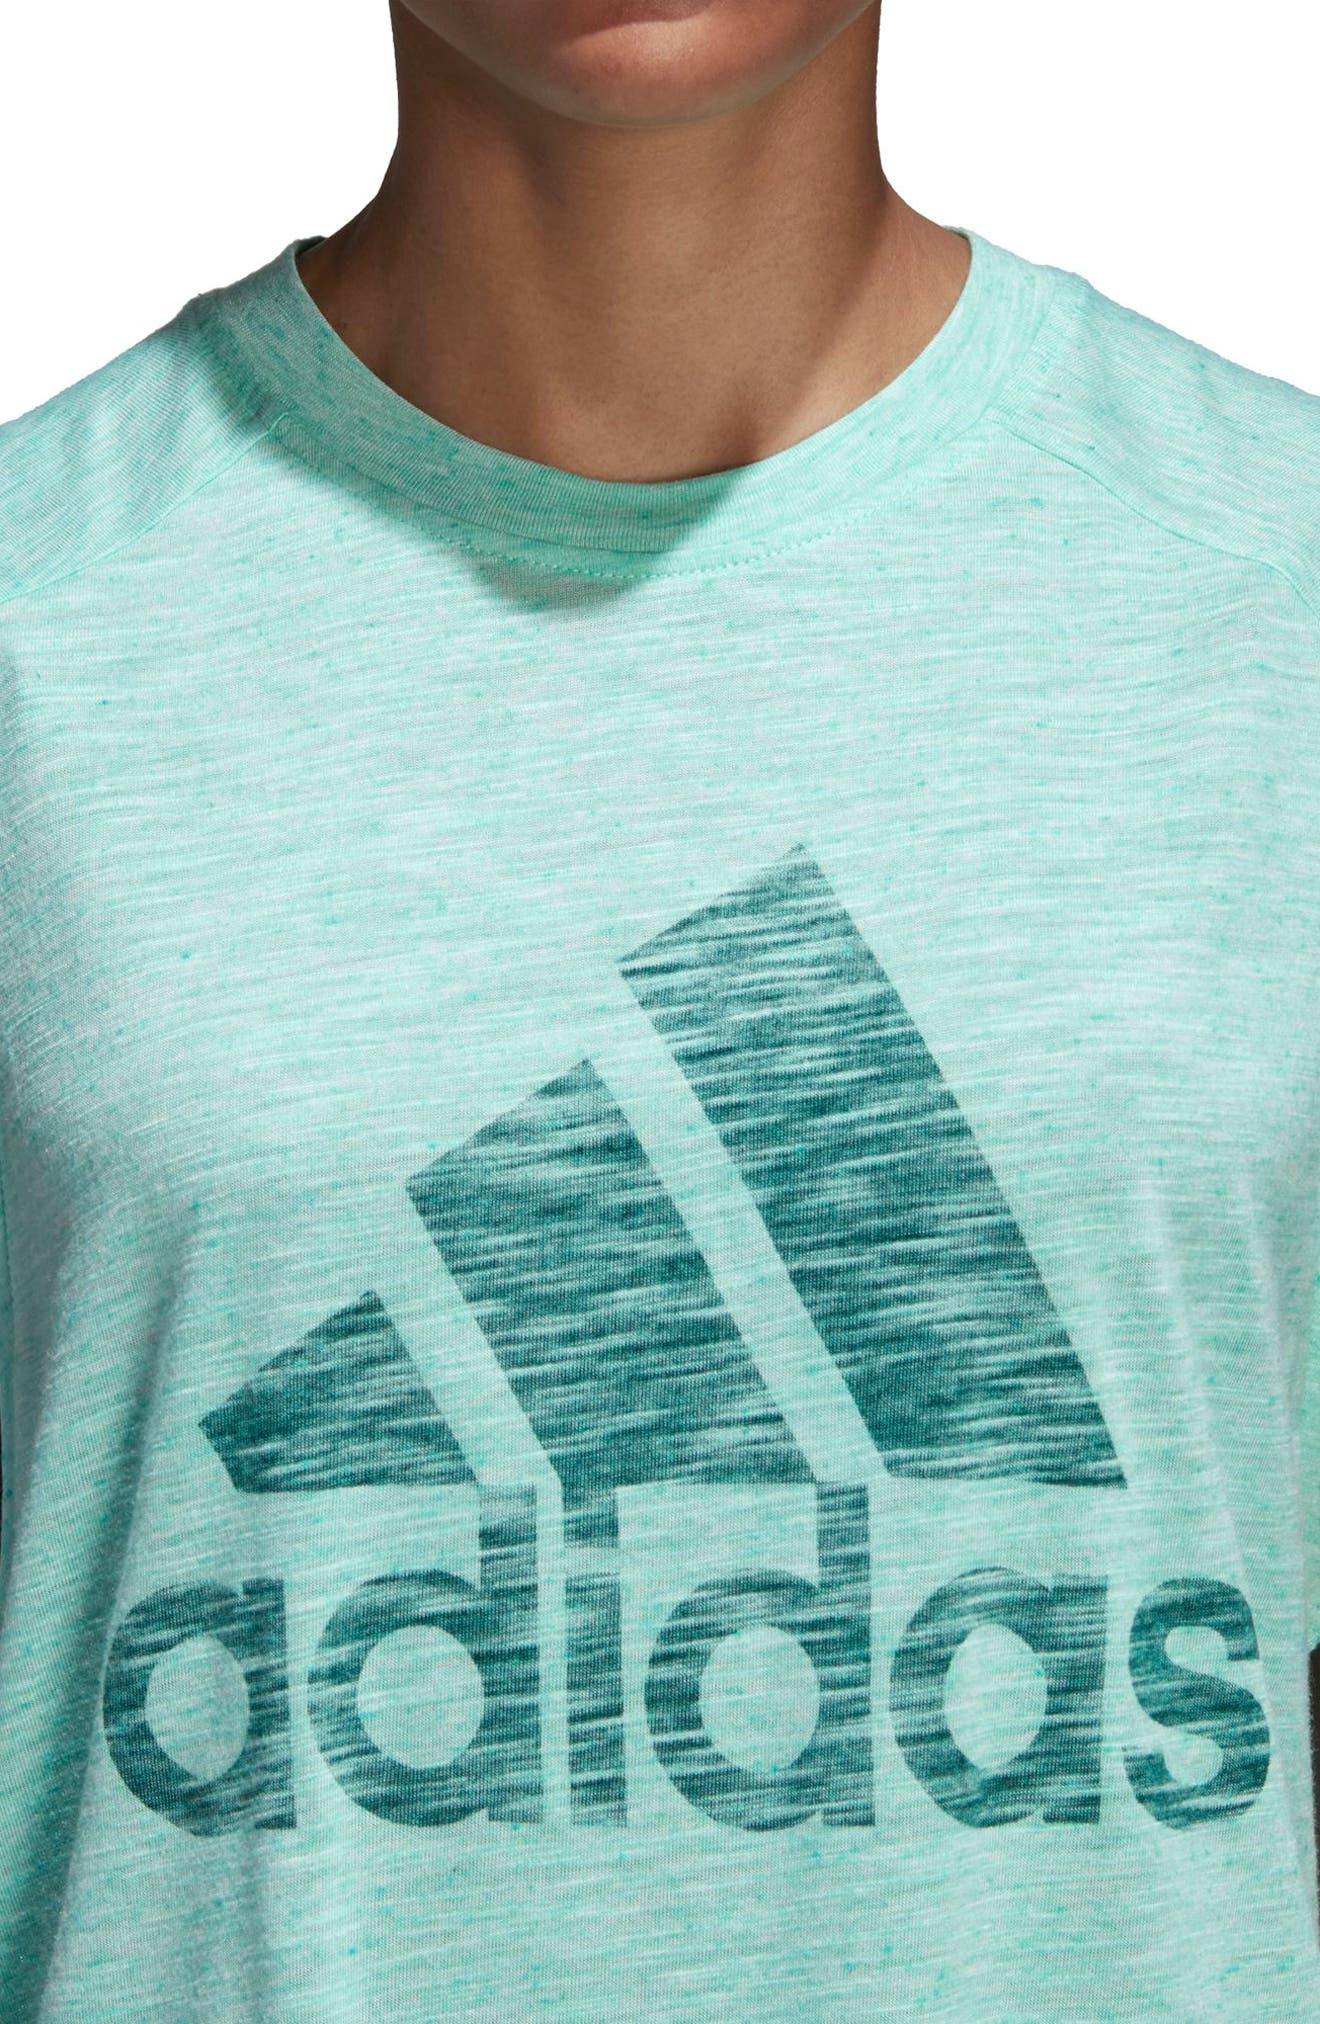 ADIDAS,                             Winners Logo Muscle Tank,                             Alternate thumbnail 4, color,                             330